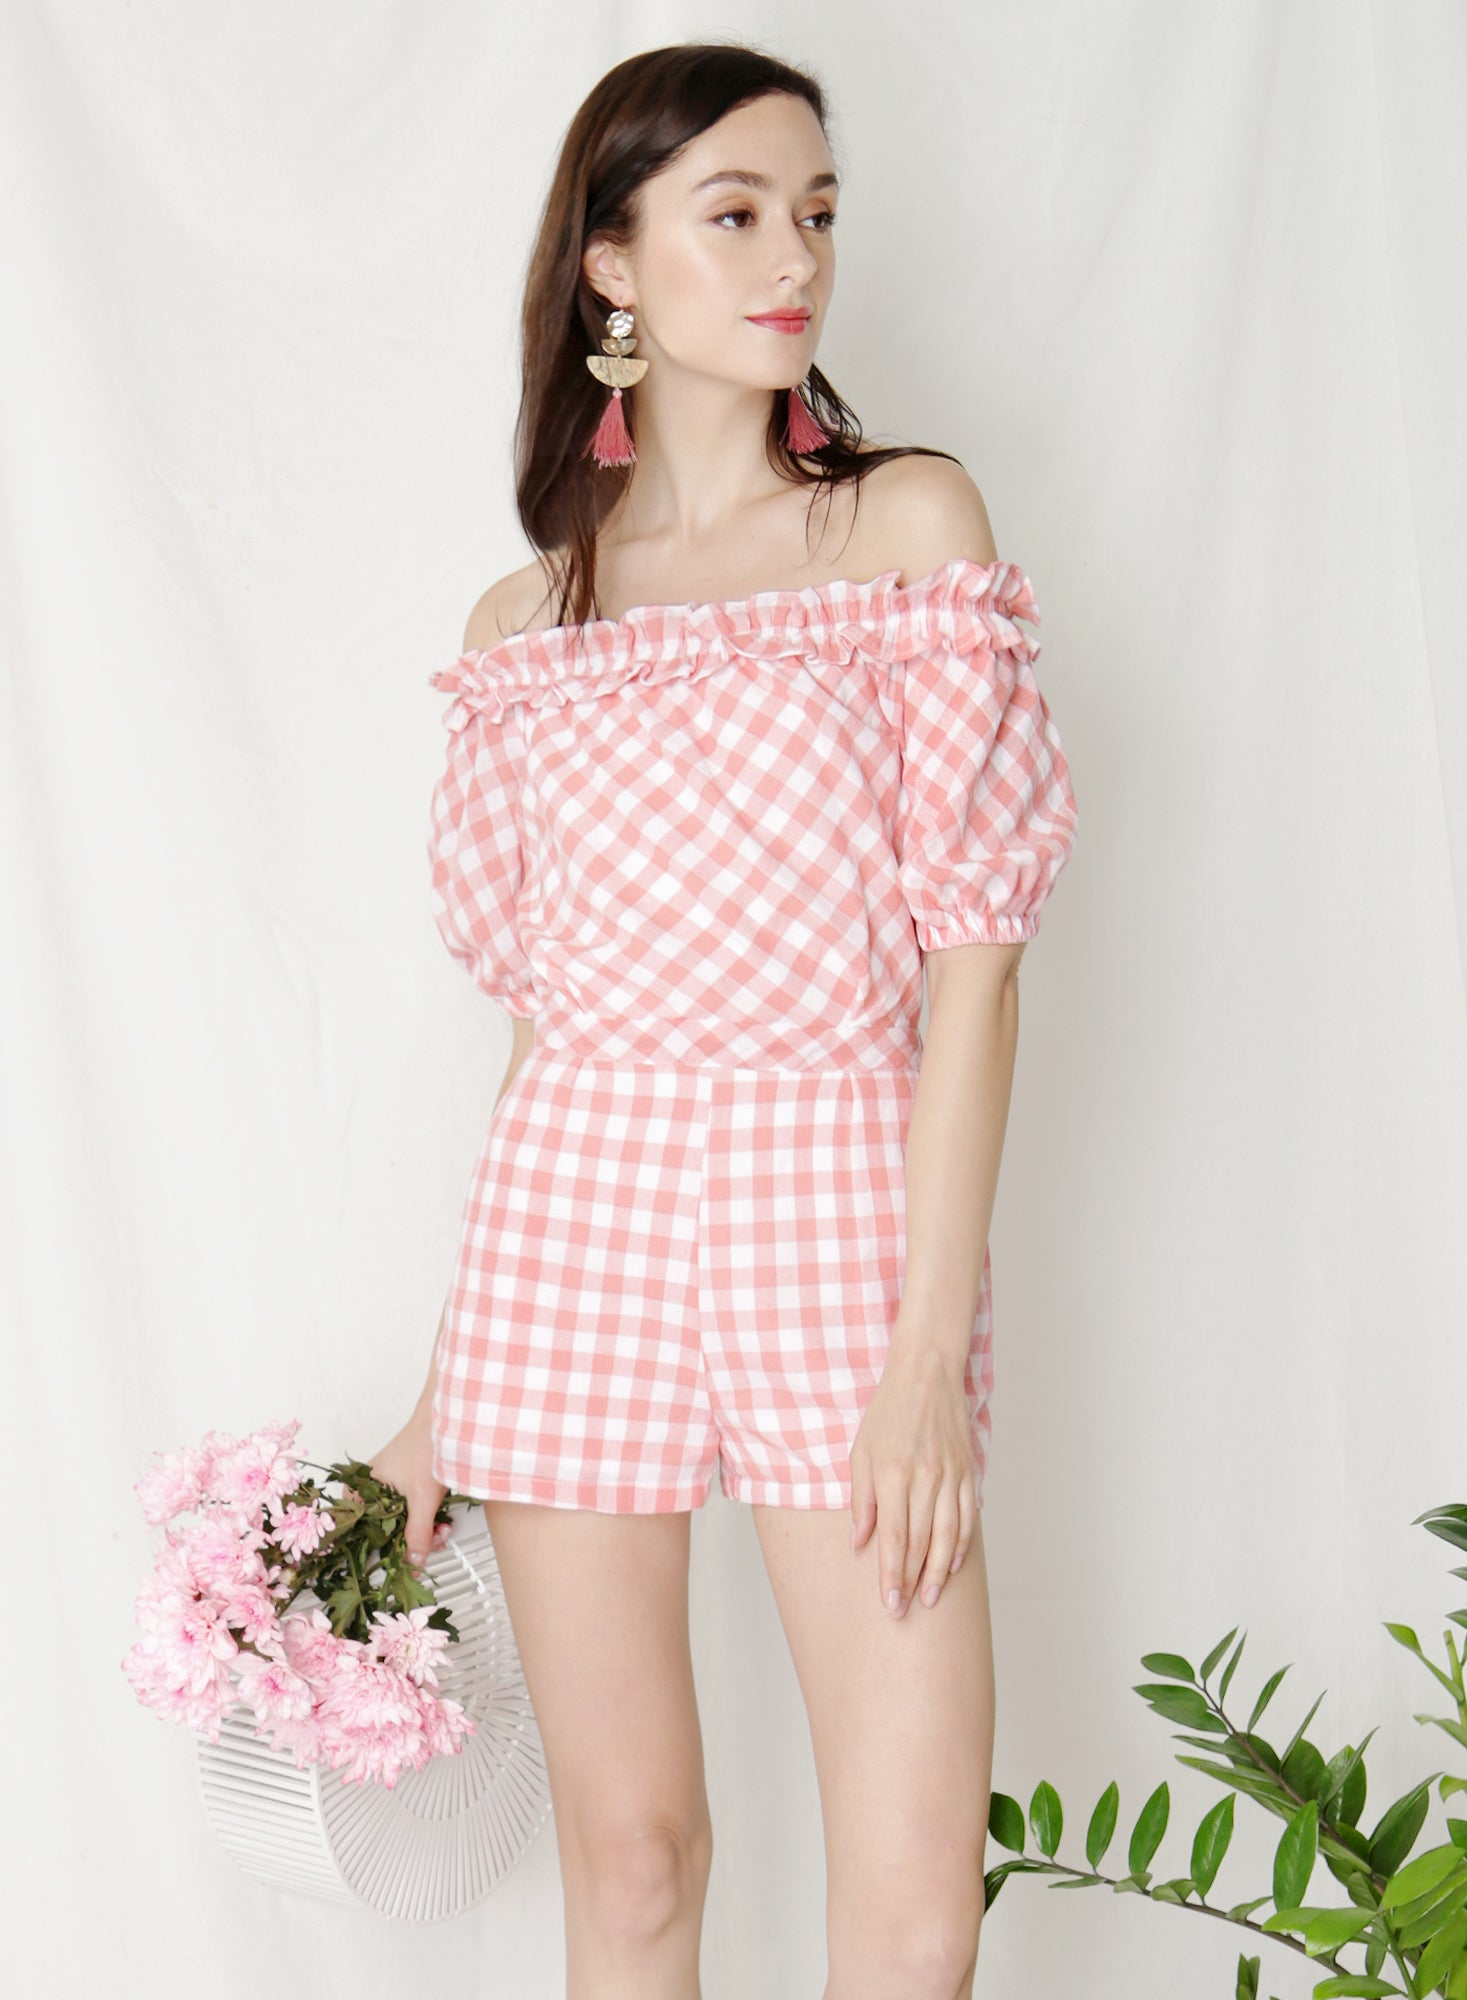 Kismet Off Shoulder Frill Romper (Pink Gingham) at $ 41.50 only sold at And Well Dressed Online Fashion Store Singapore